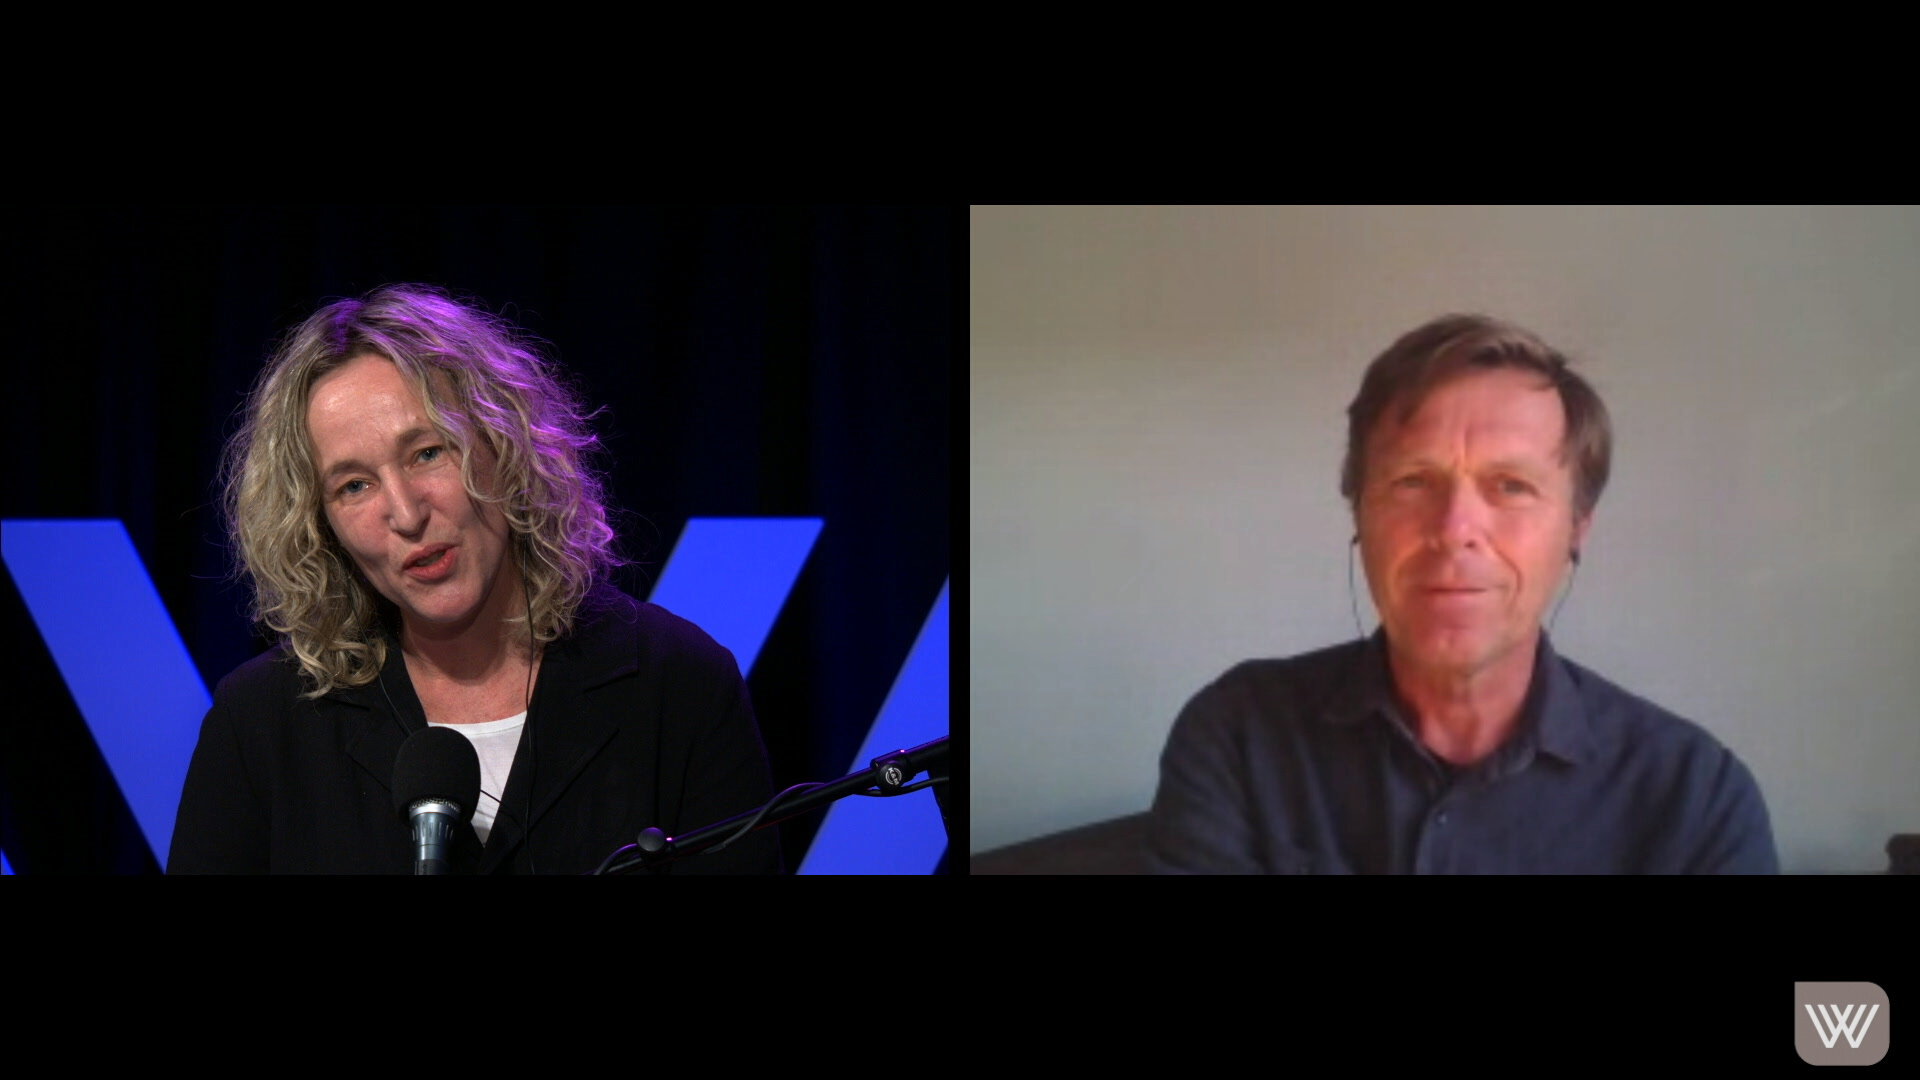 Screenshot of Sally Warhaft, in our studio, and Tom Porteous, via video link